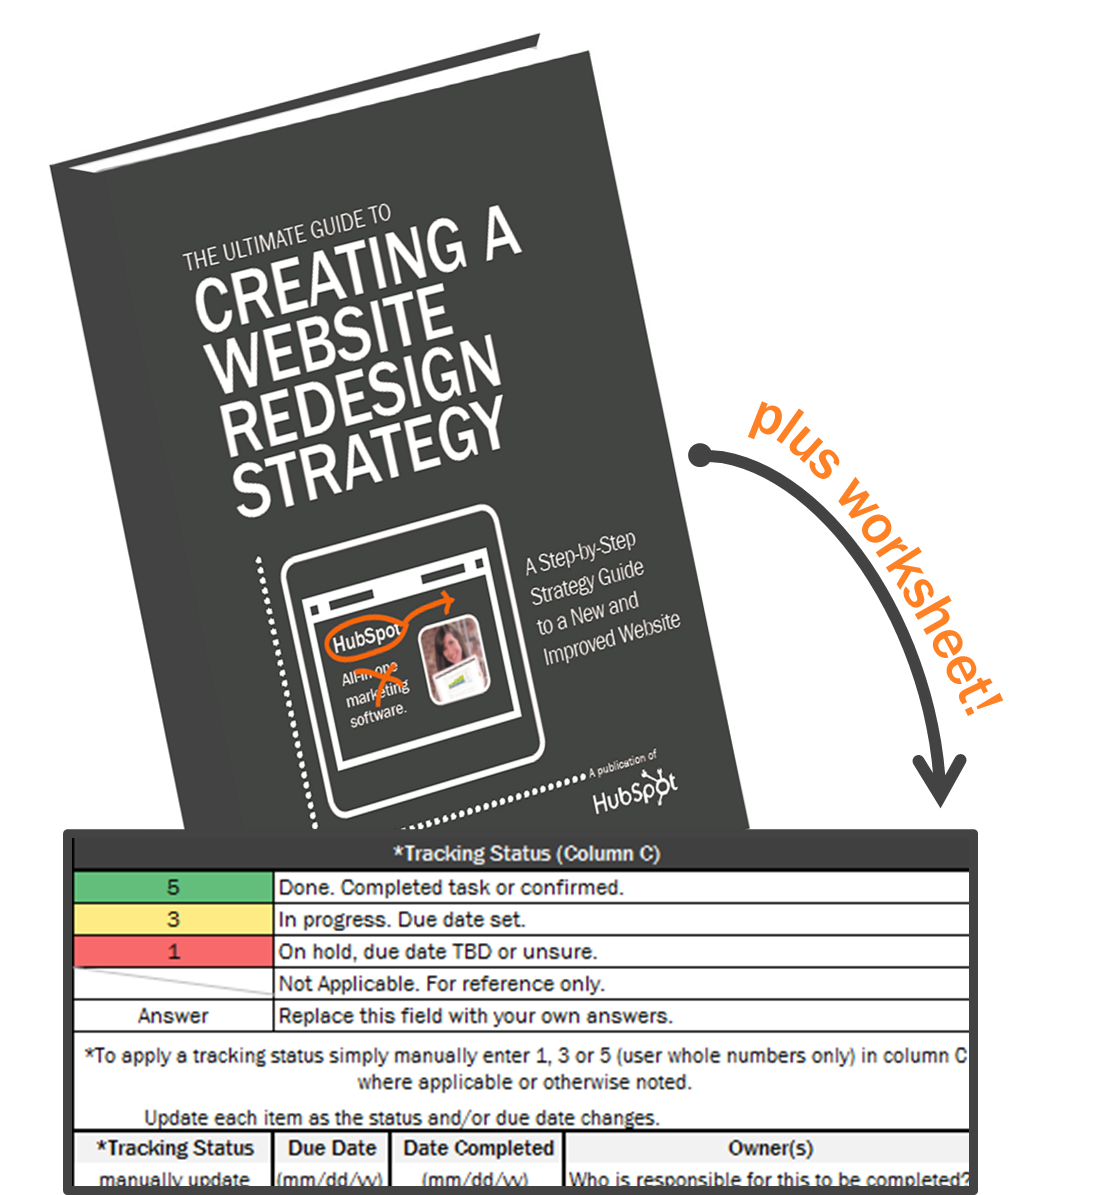 Website Redesign Planning Amp Progress Kit A Strategy Guide